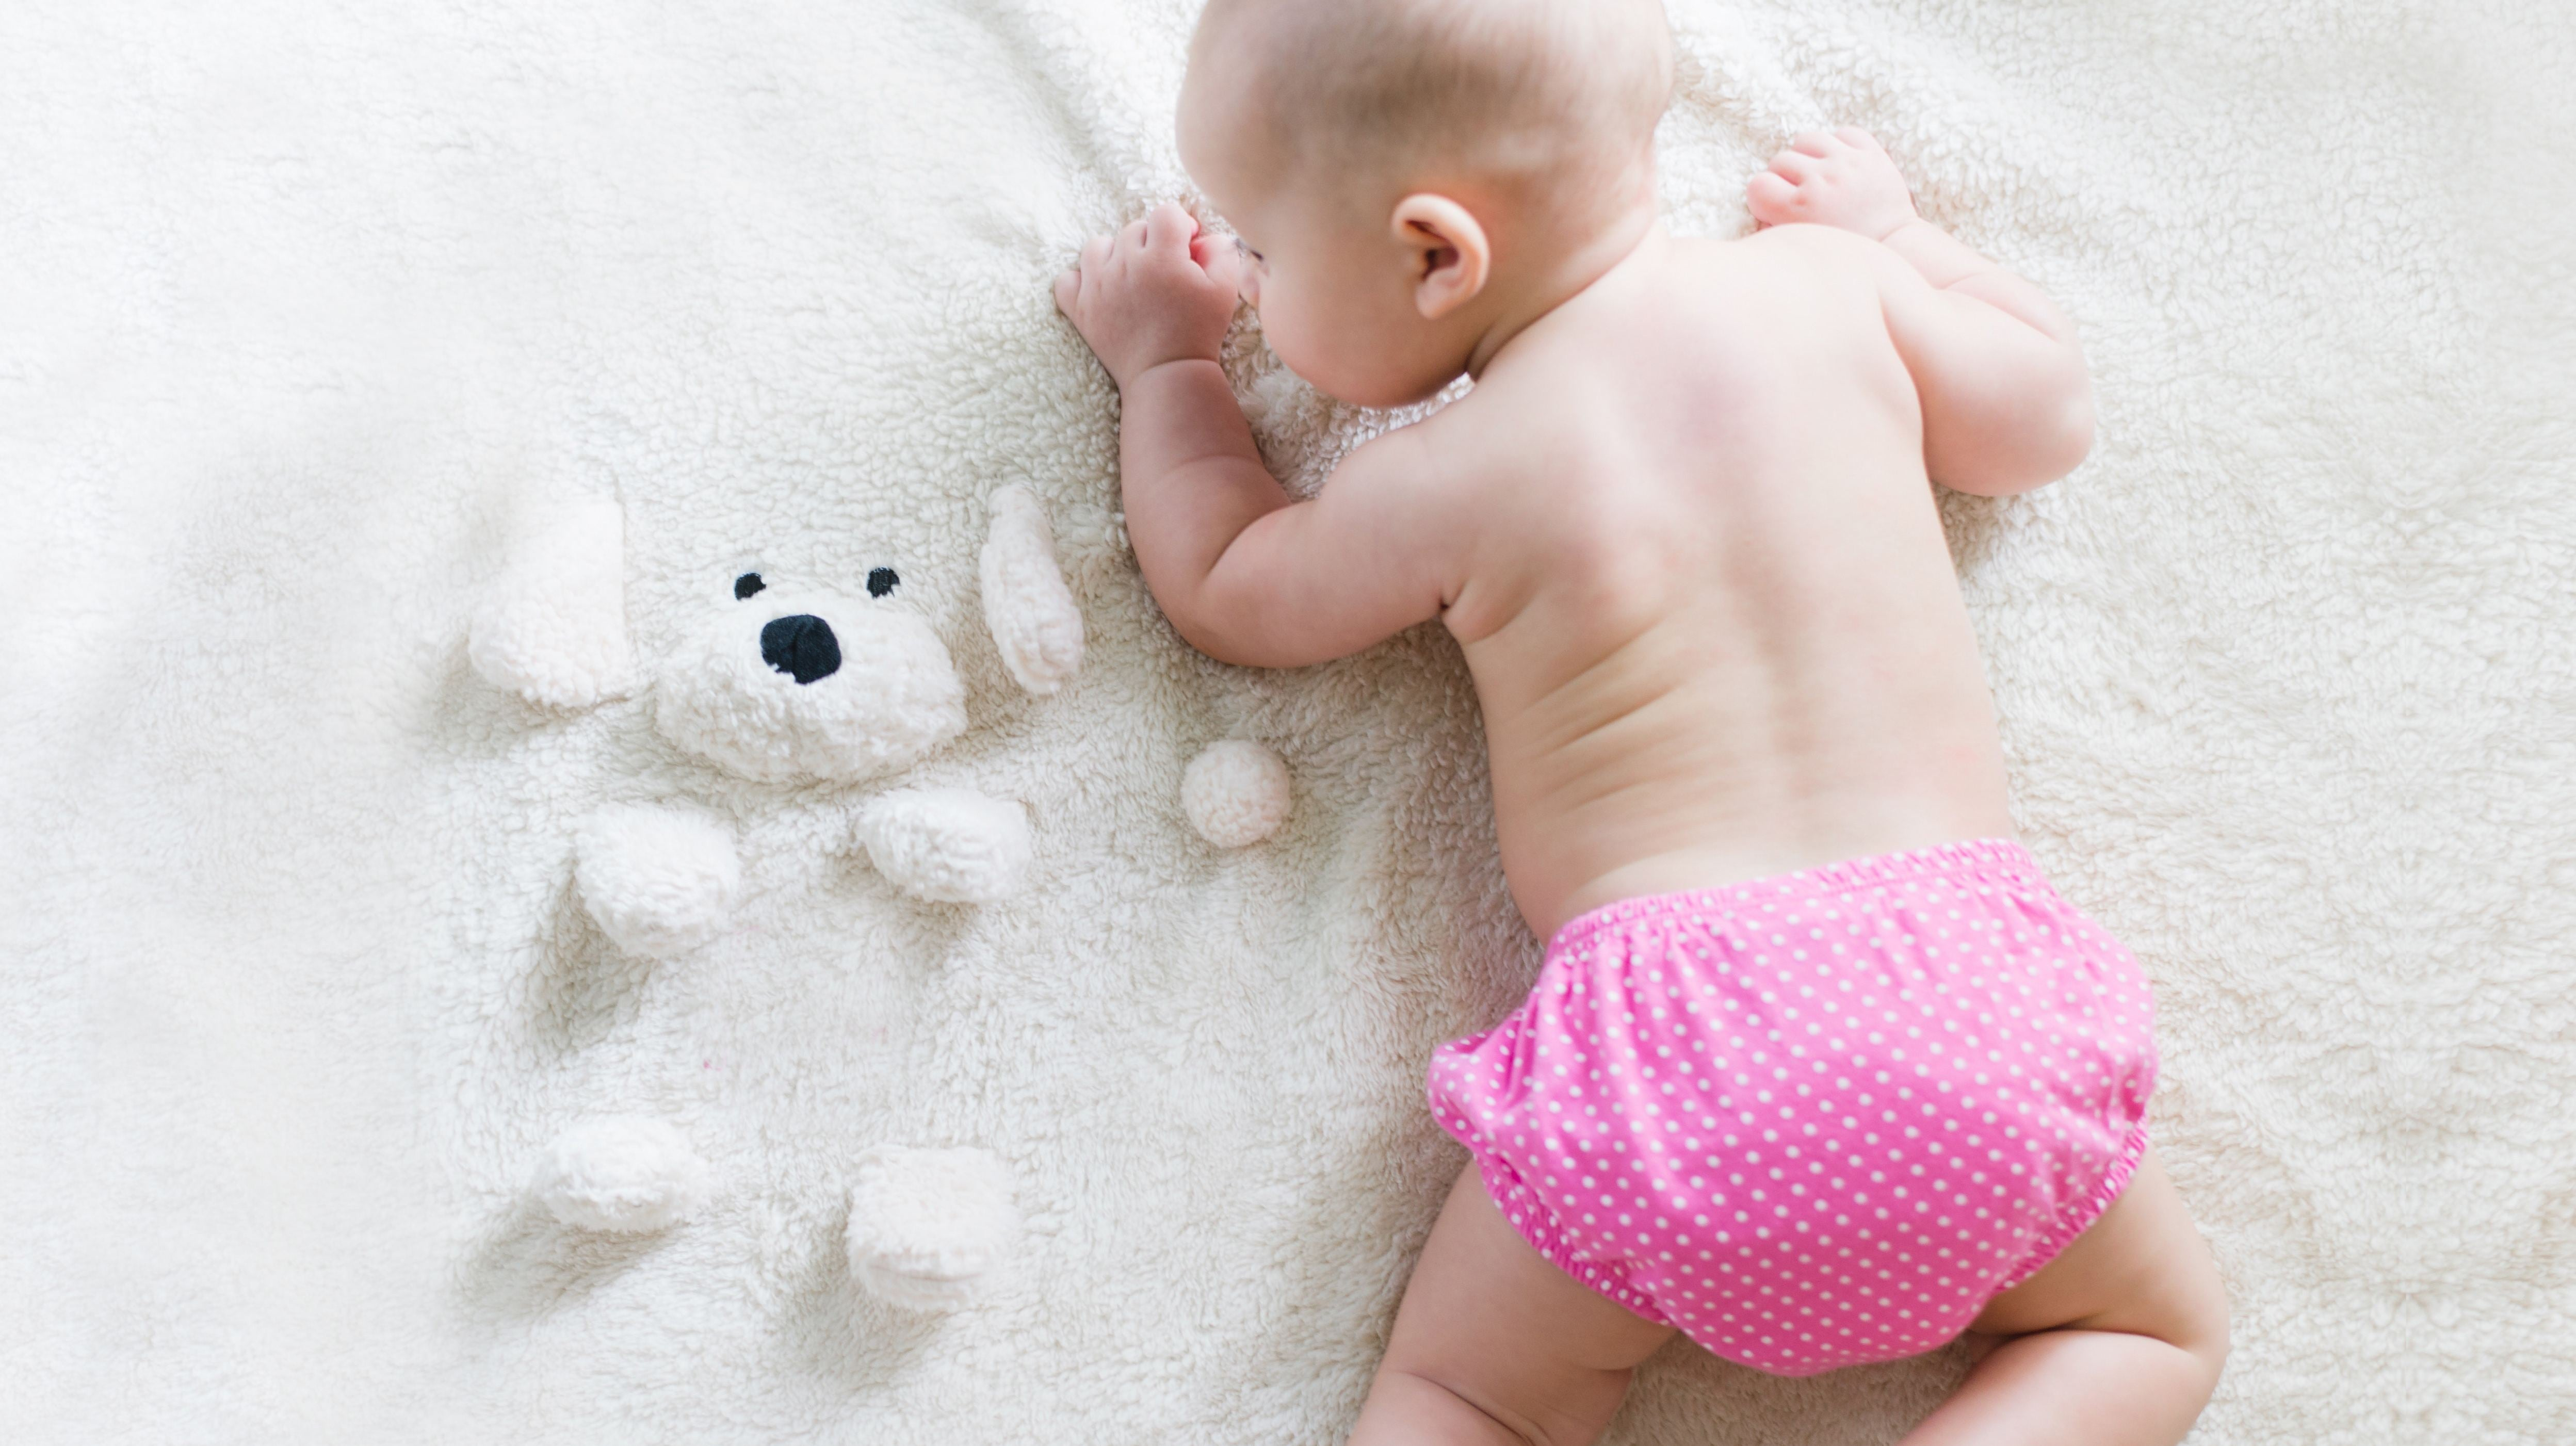 Make Diaper Changes Easier With A Special Toy